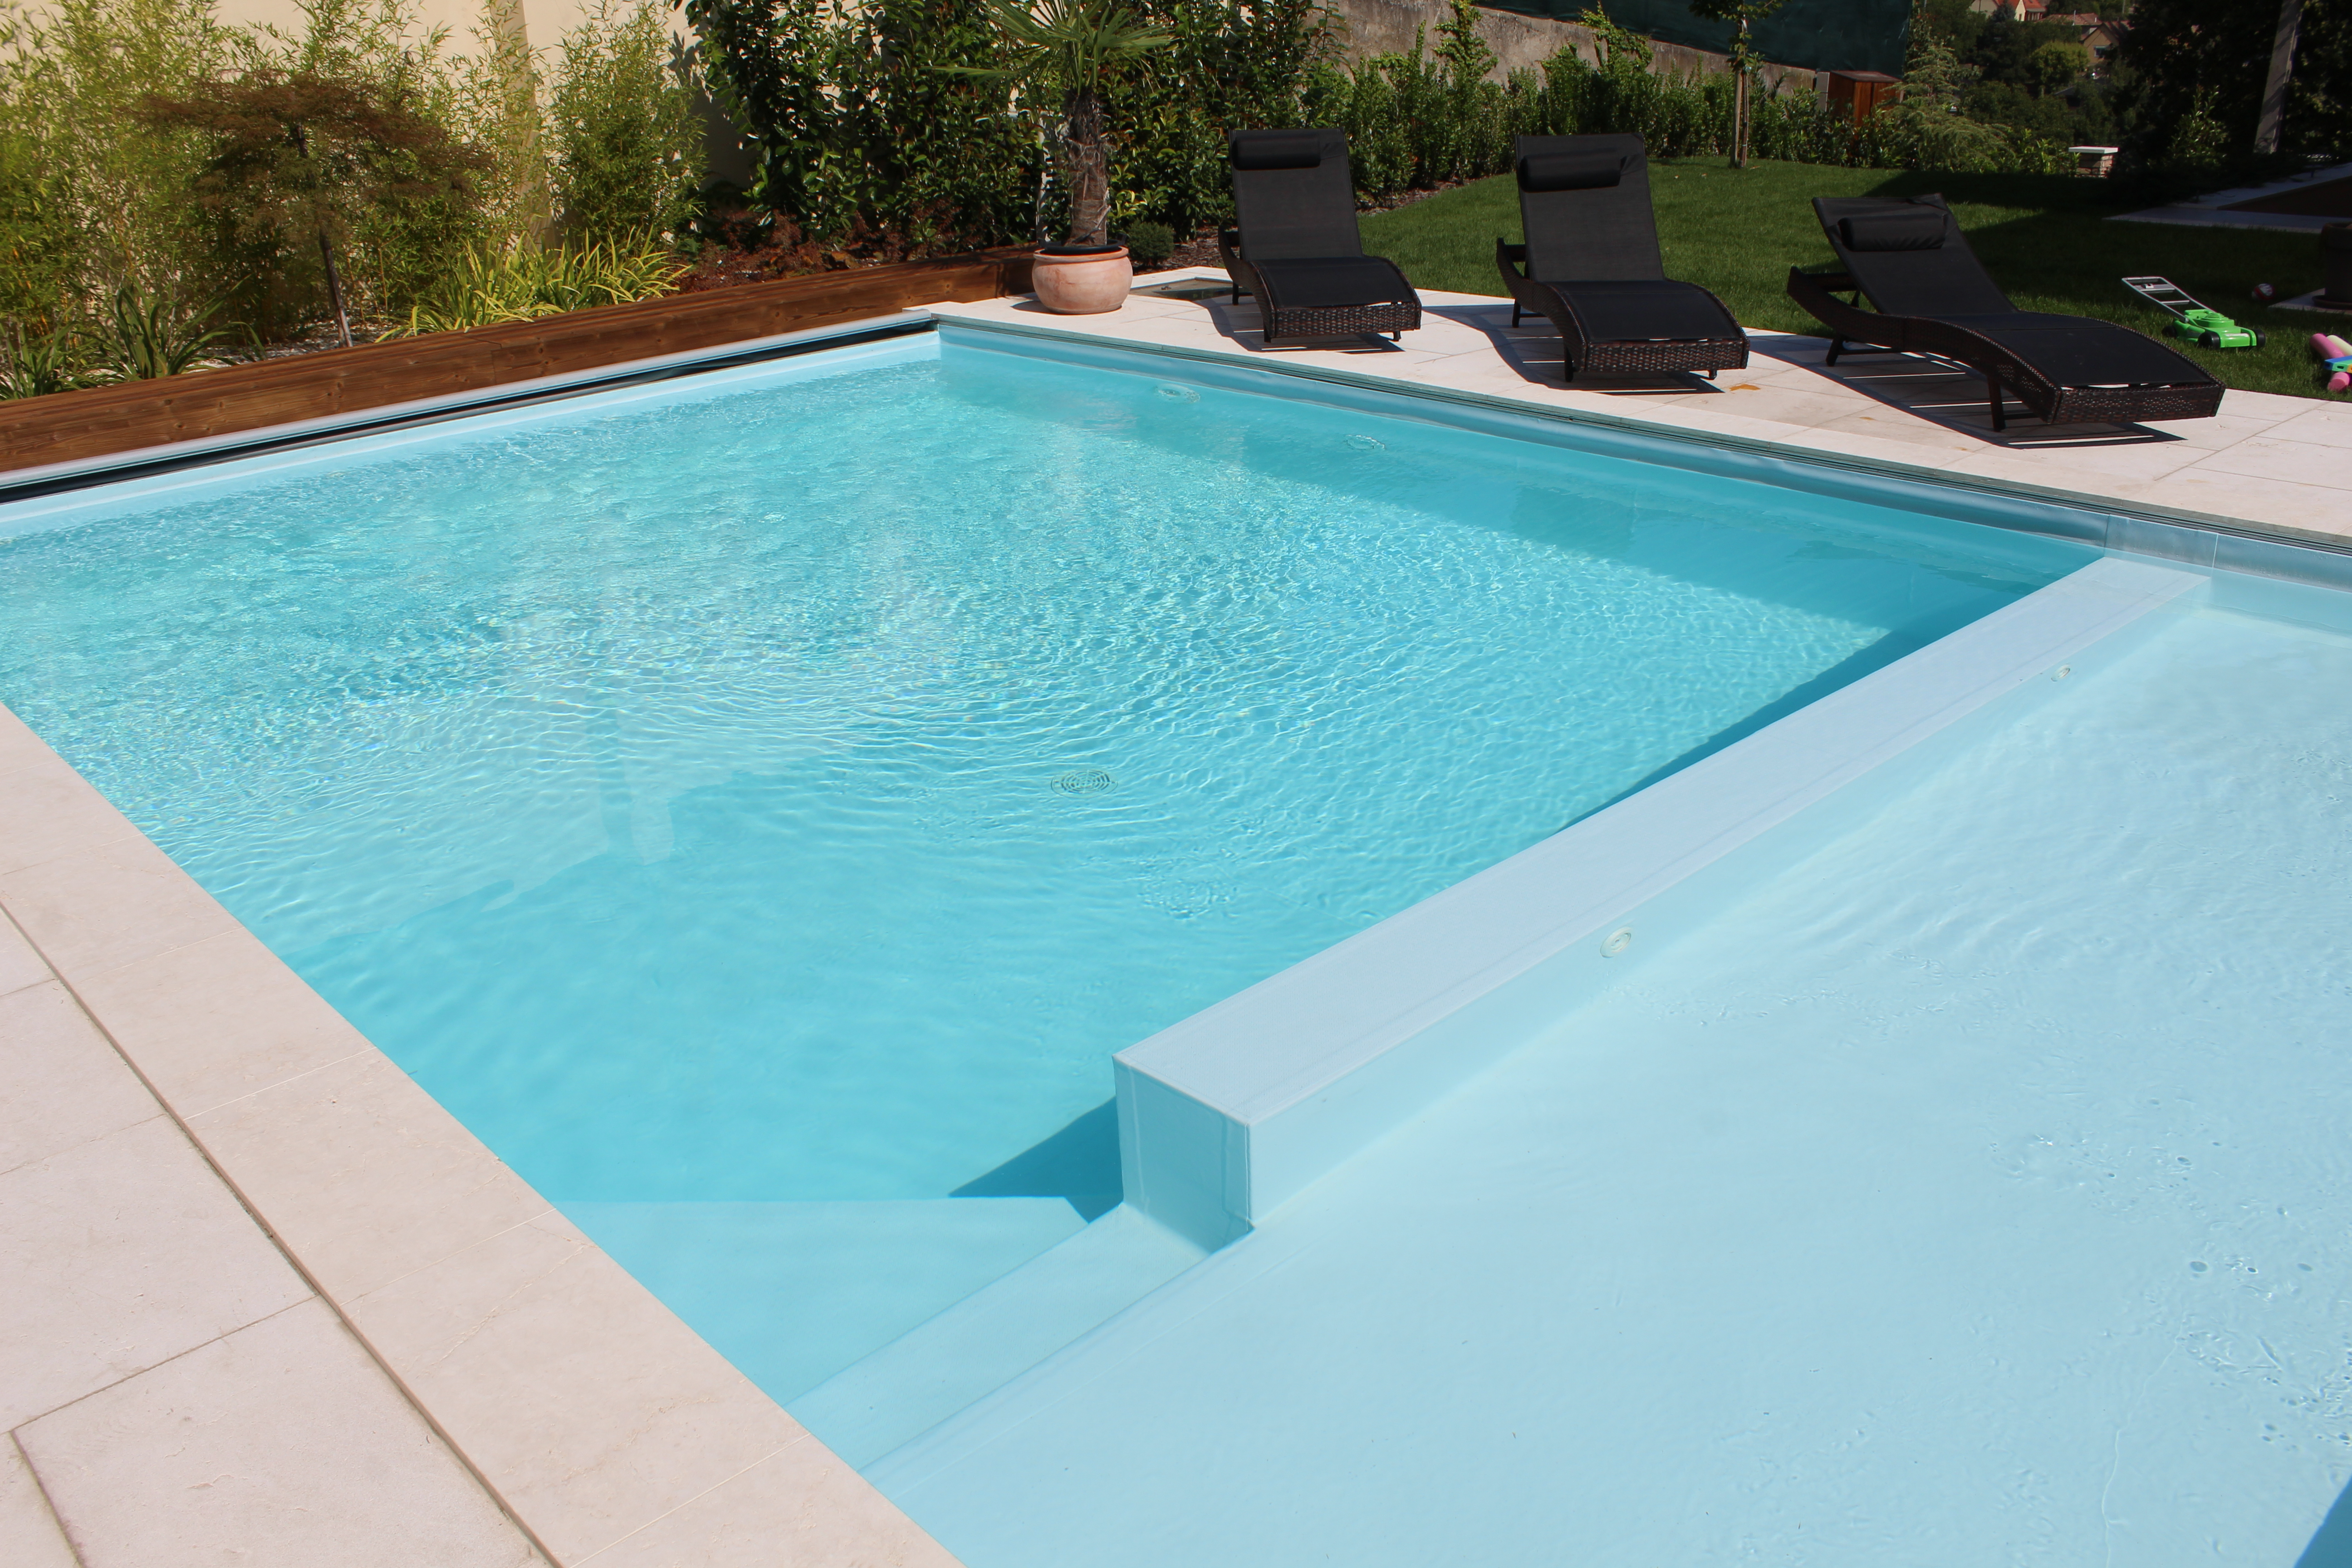 Recessed swimming pools